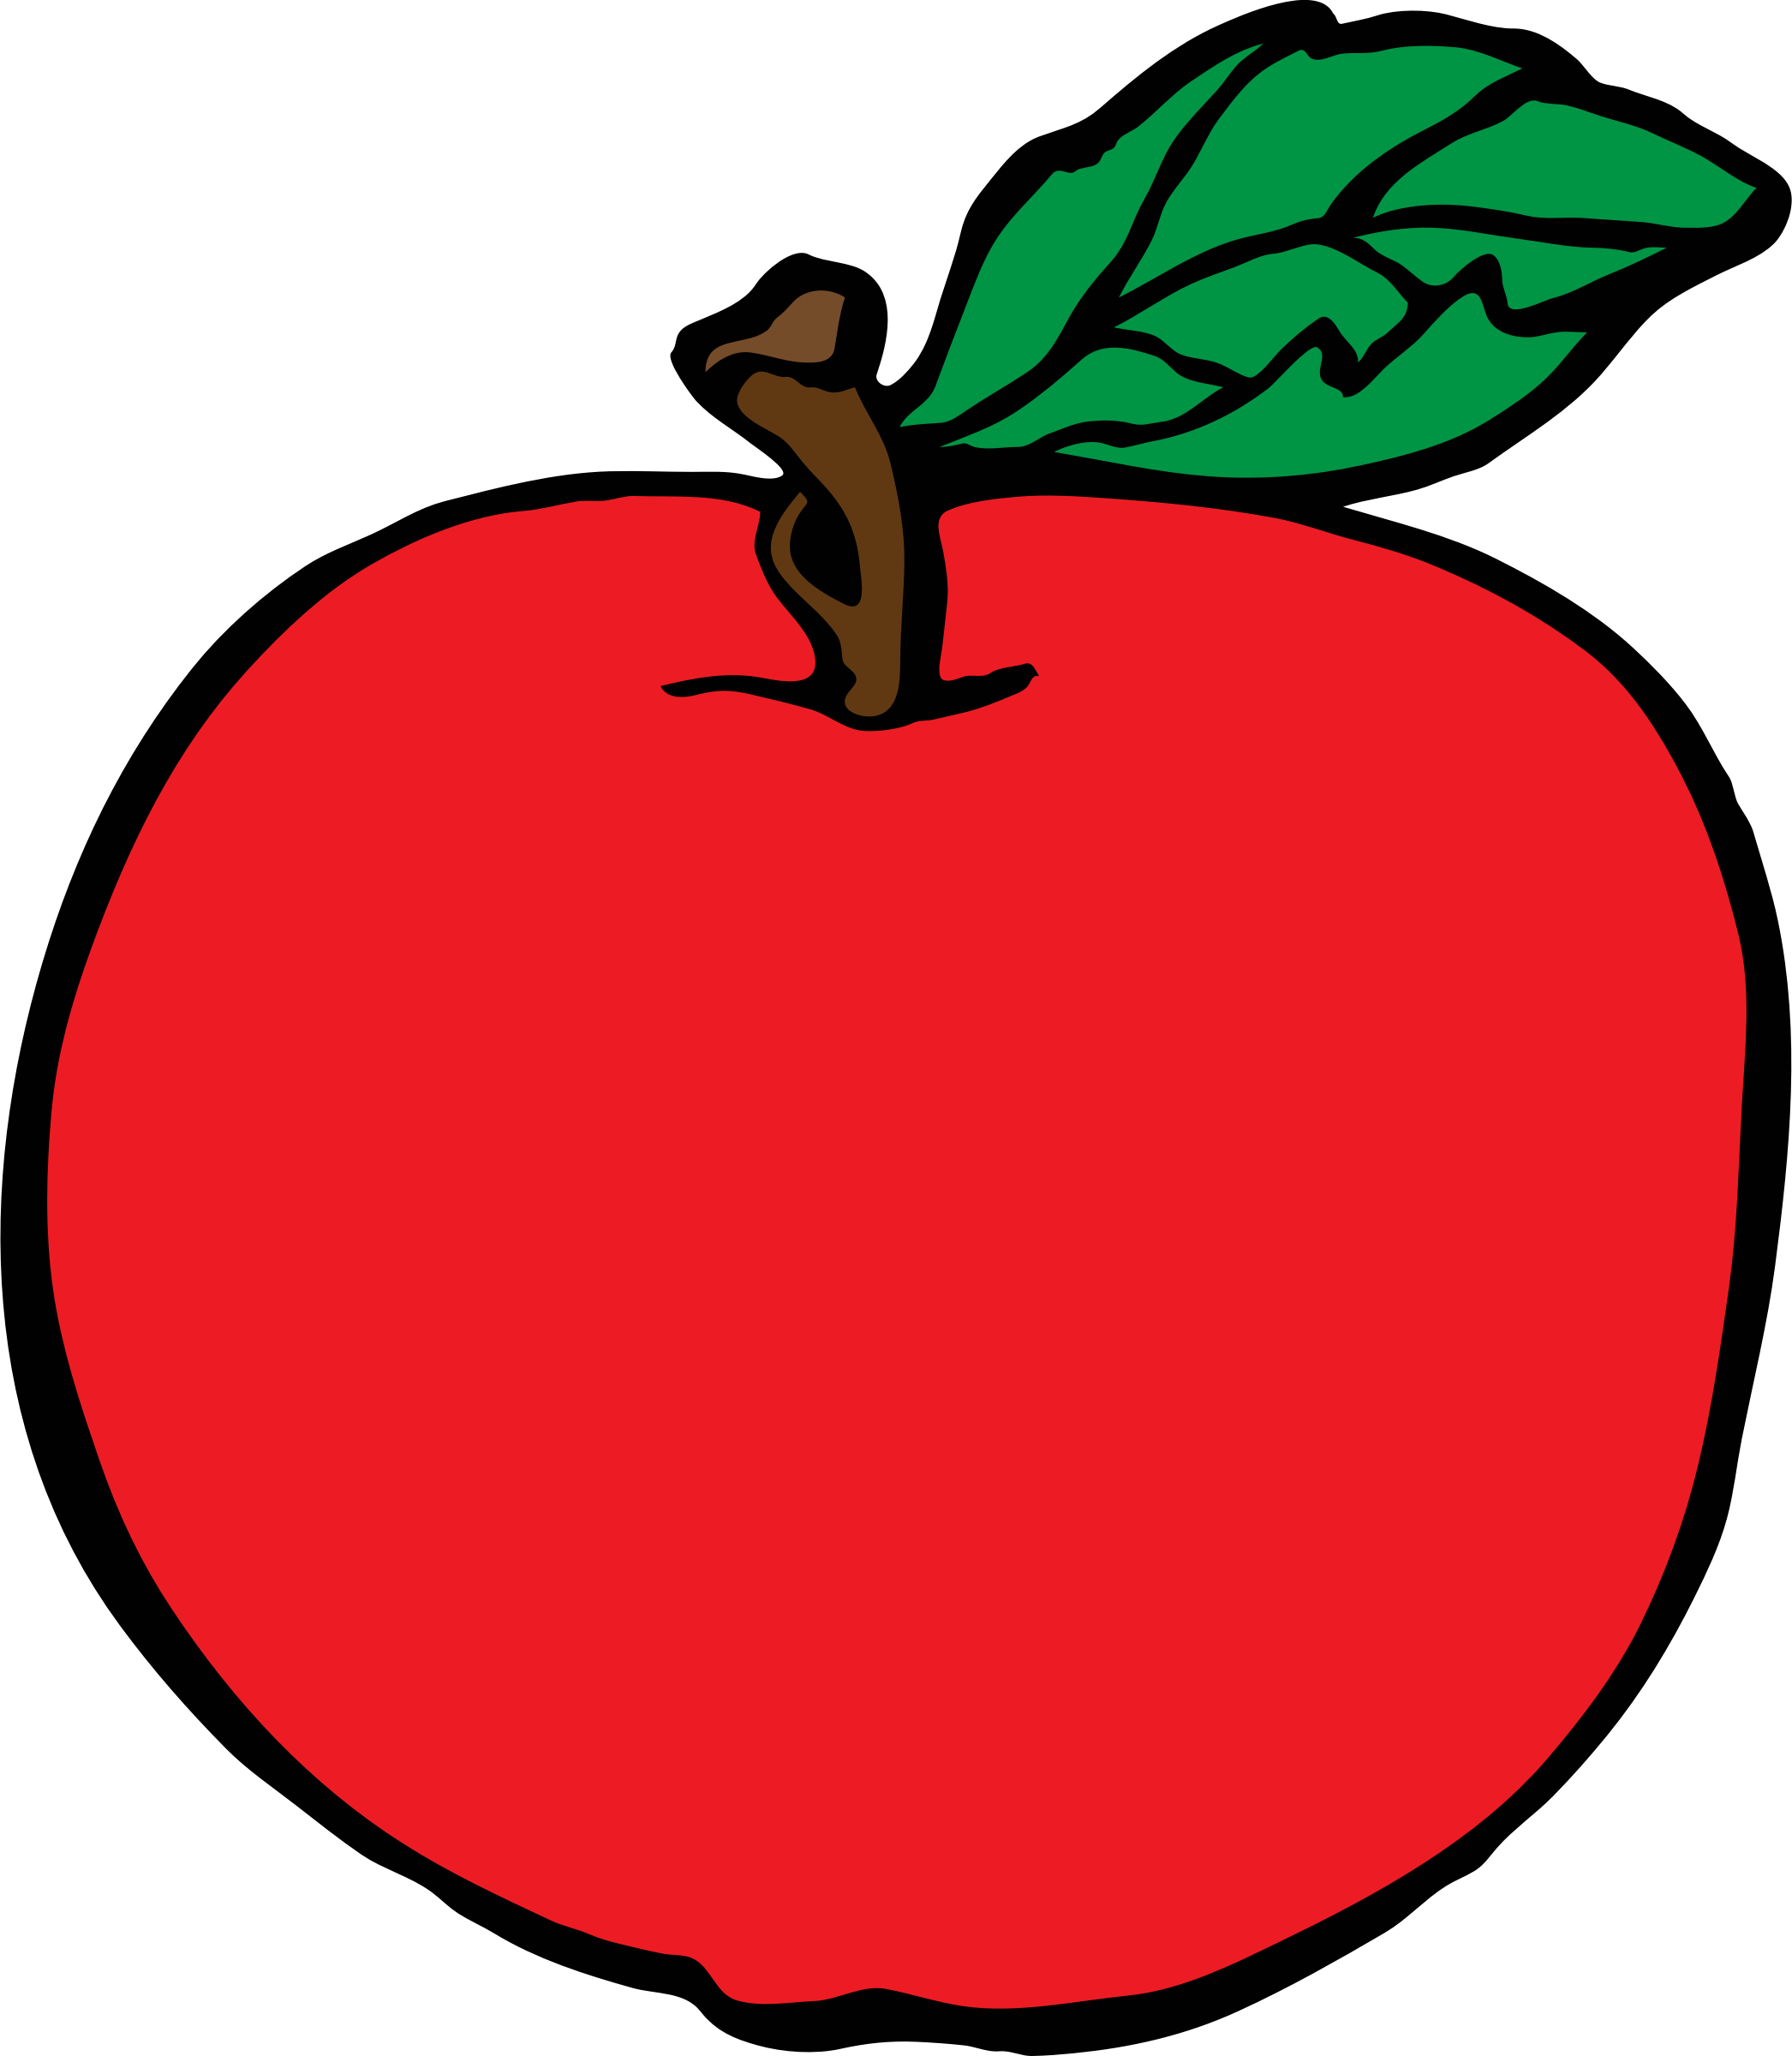 Back to school apple clipart clipart transparent library Animated Apple Image Group (49+) clipart transparent library